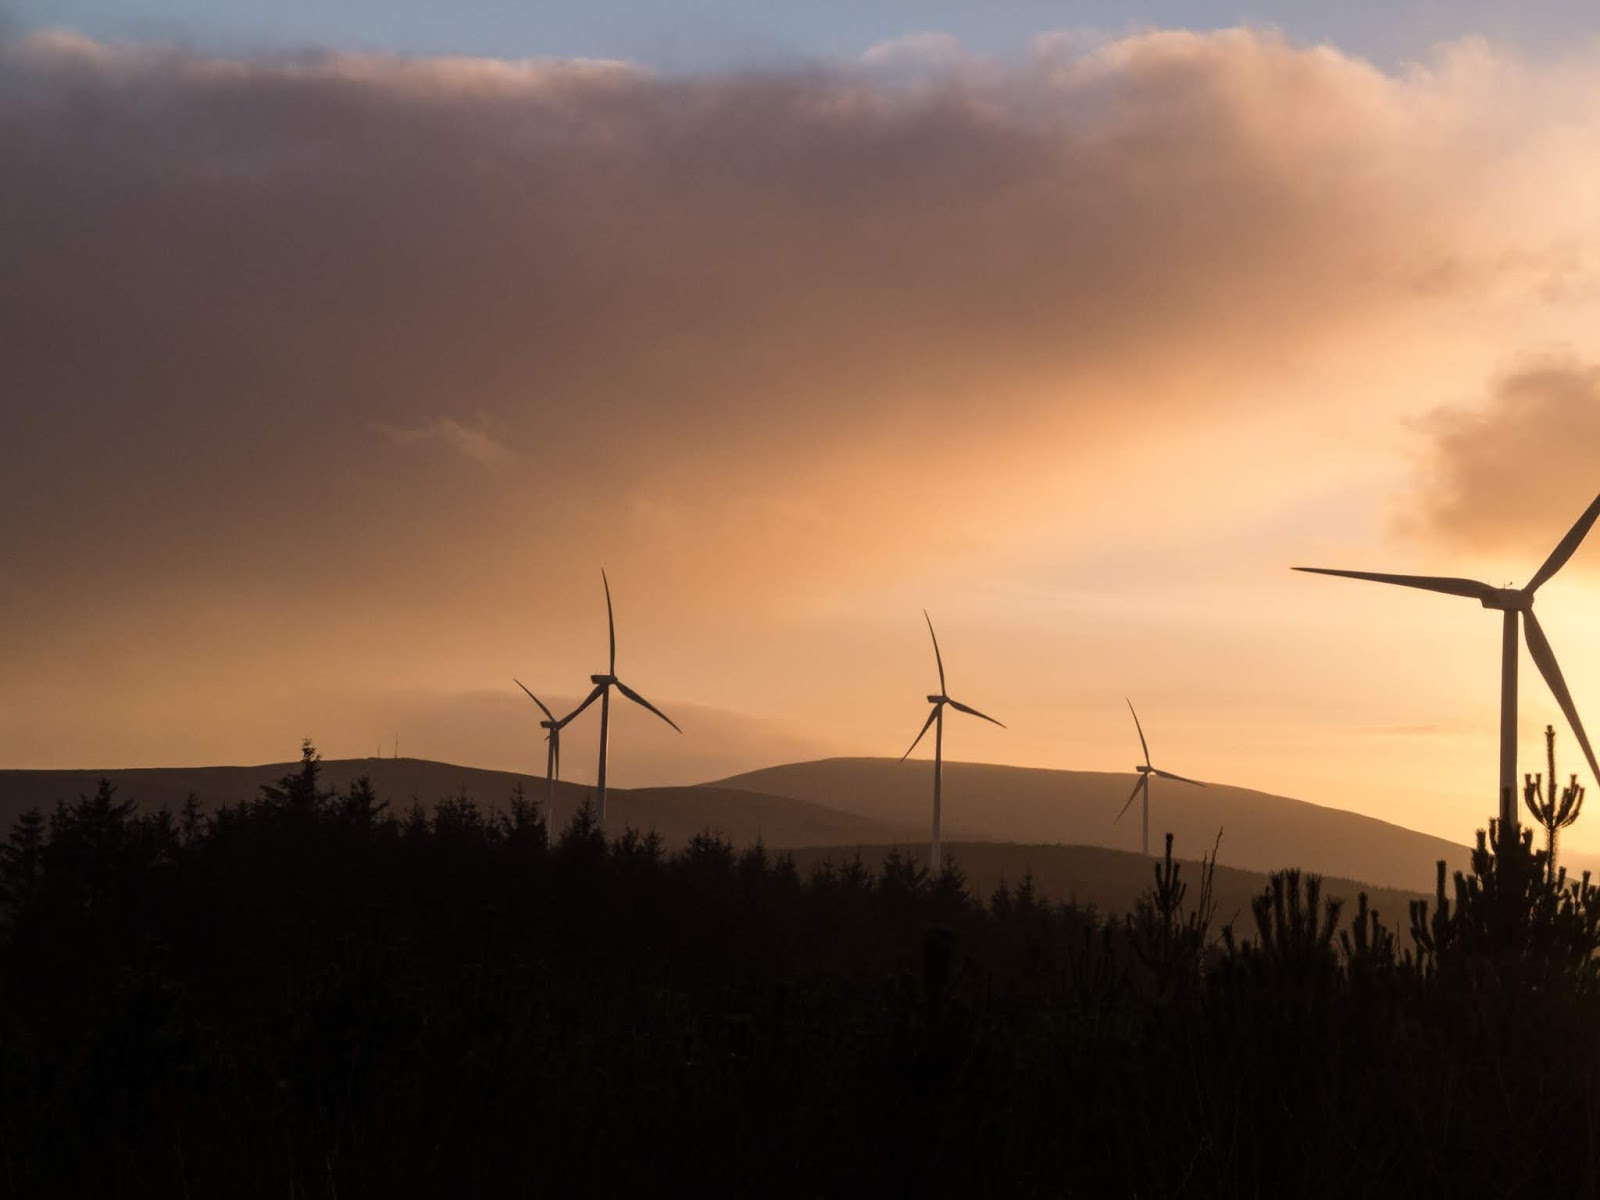 Wind turbine, mountain and conifer landscape at sunset.